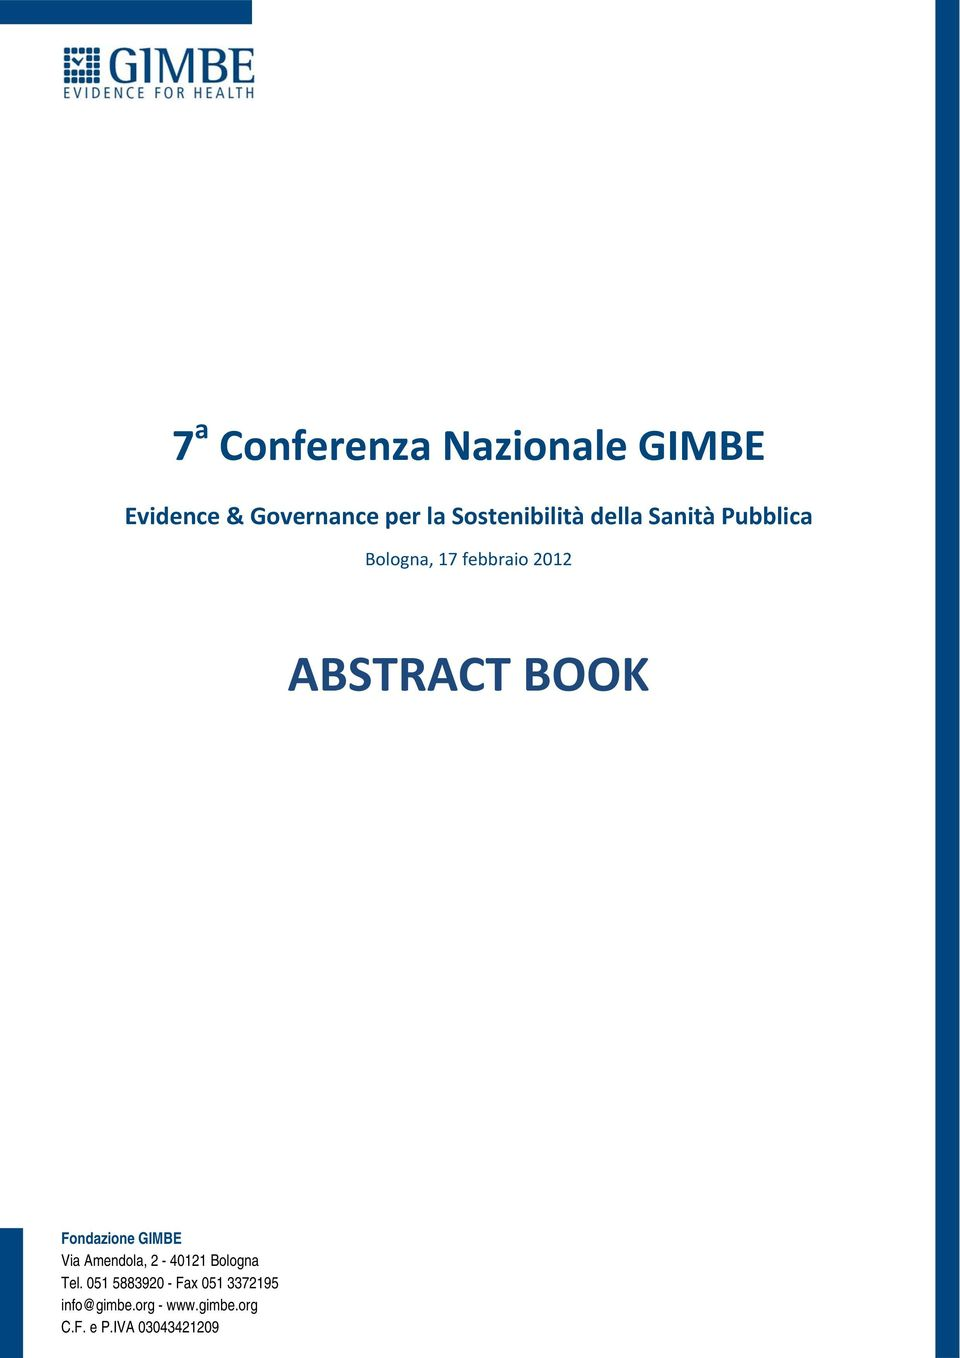 ABSTRACT BOOK Fondazione GIMBE Via Amendola, 2-40121 Bologna Tel.